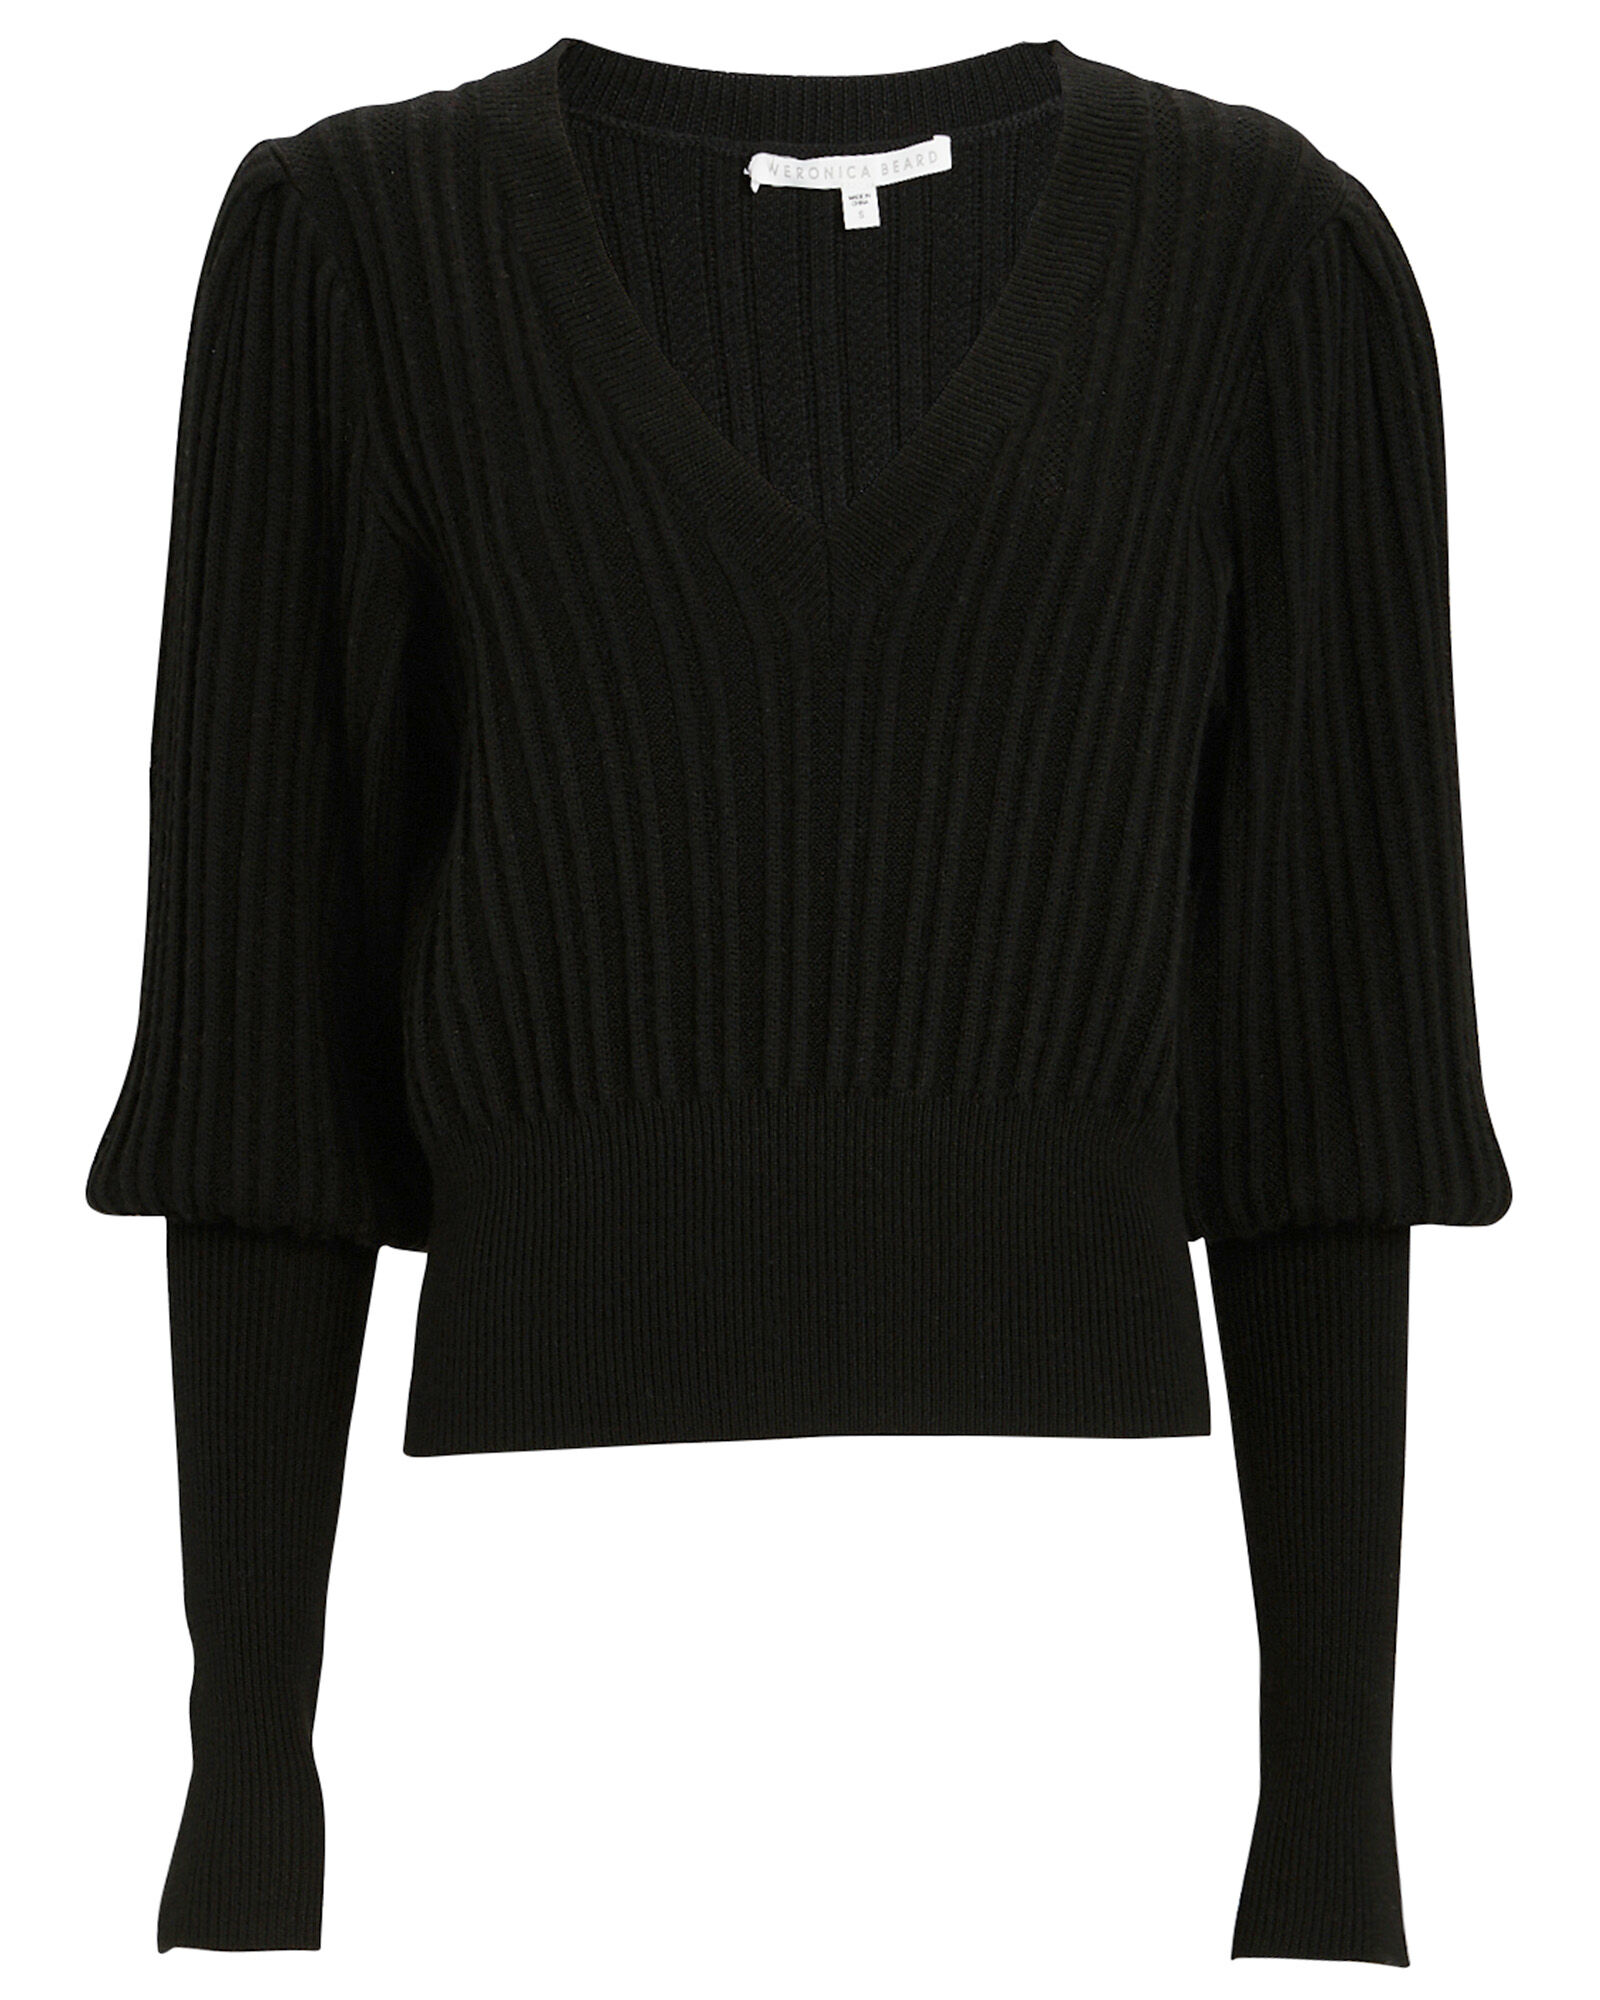 Esme V-Neck Puff Sleeve Sweater, BLACK, hi-res